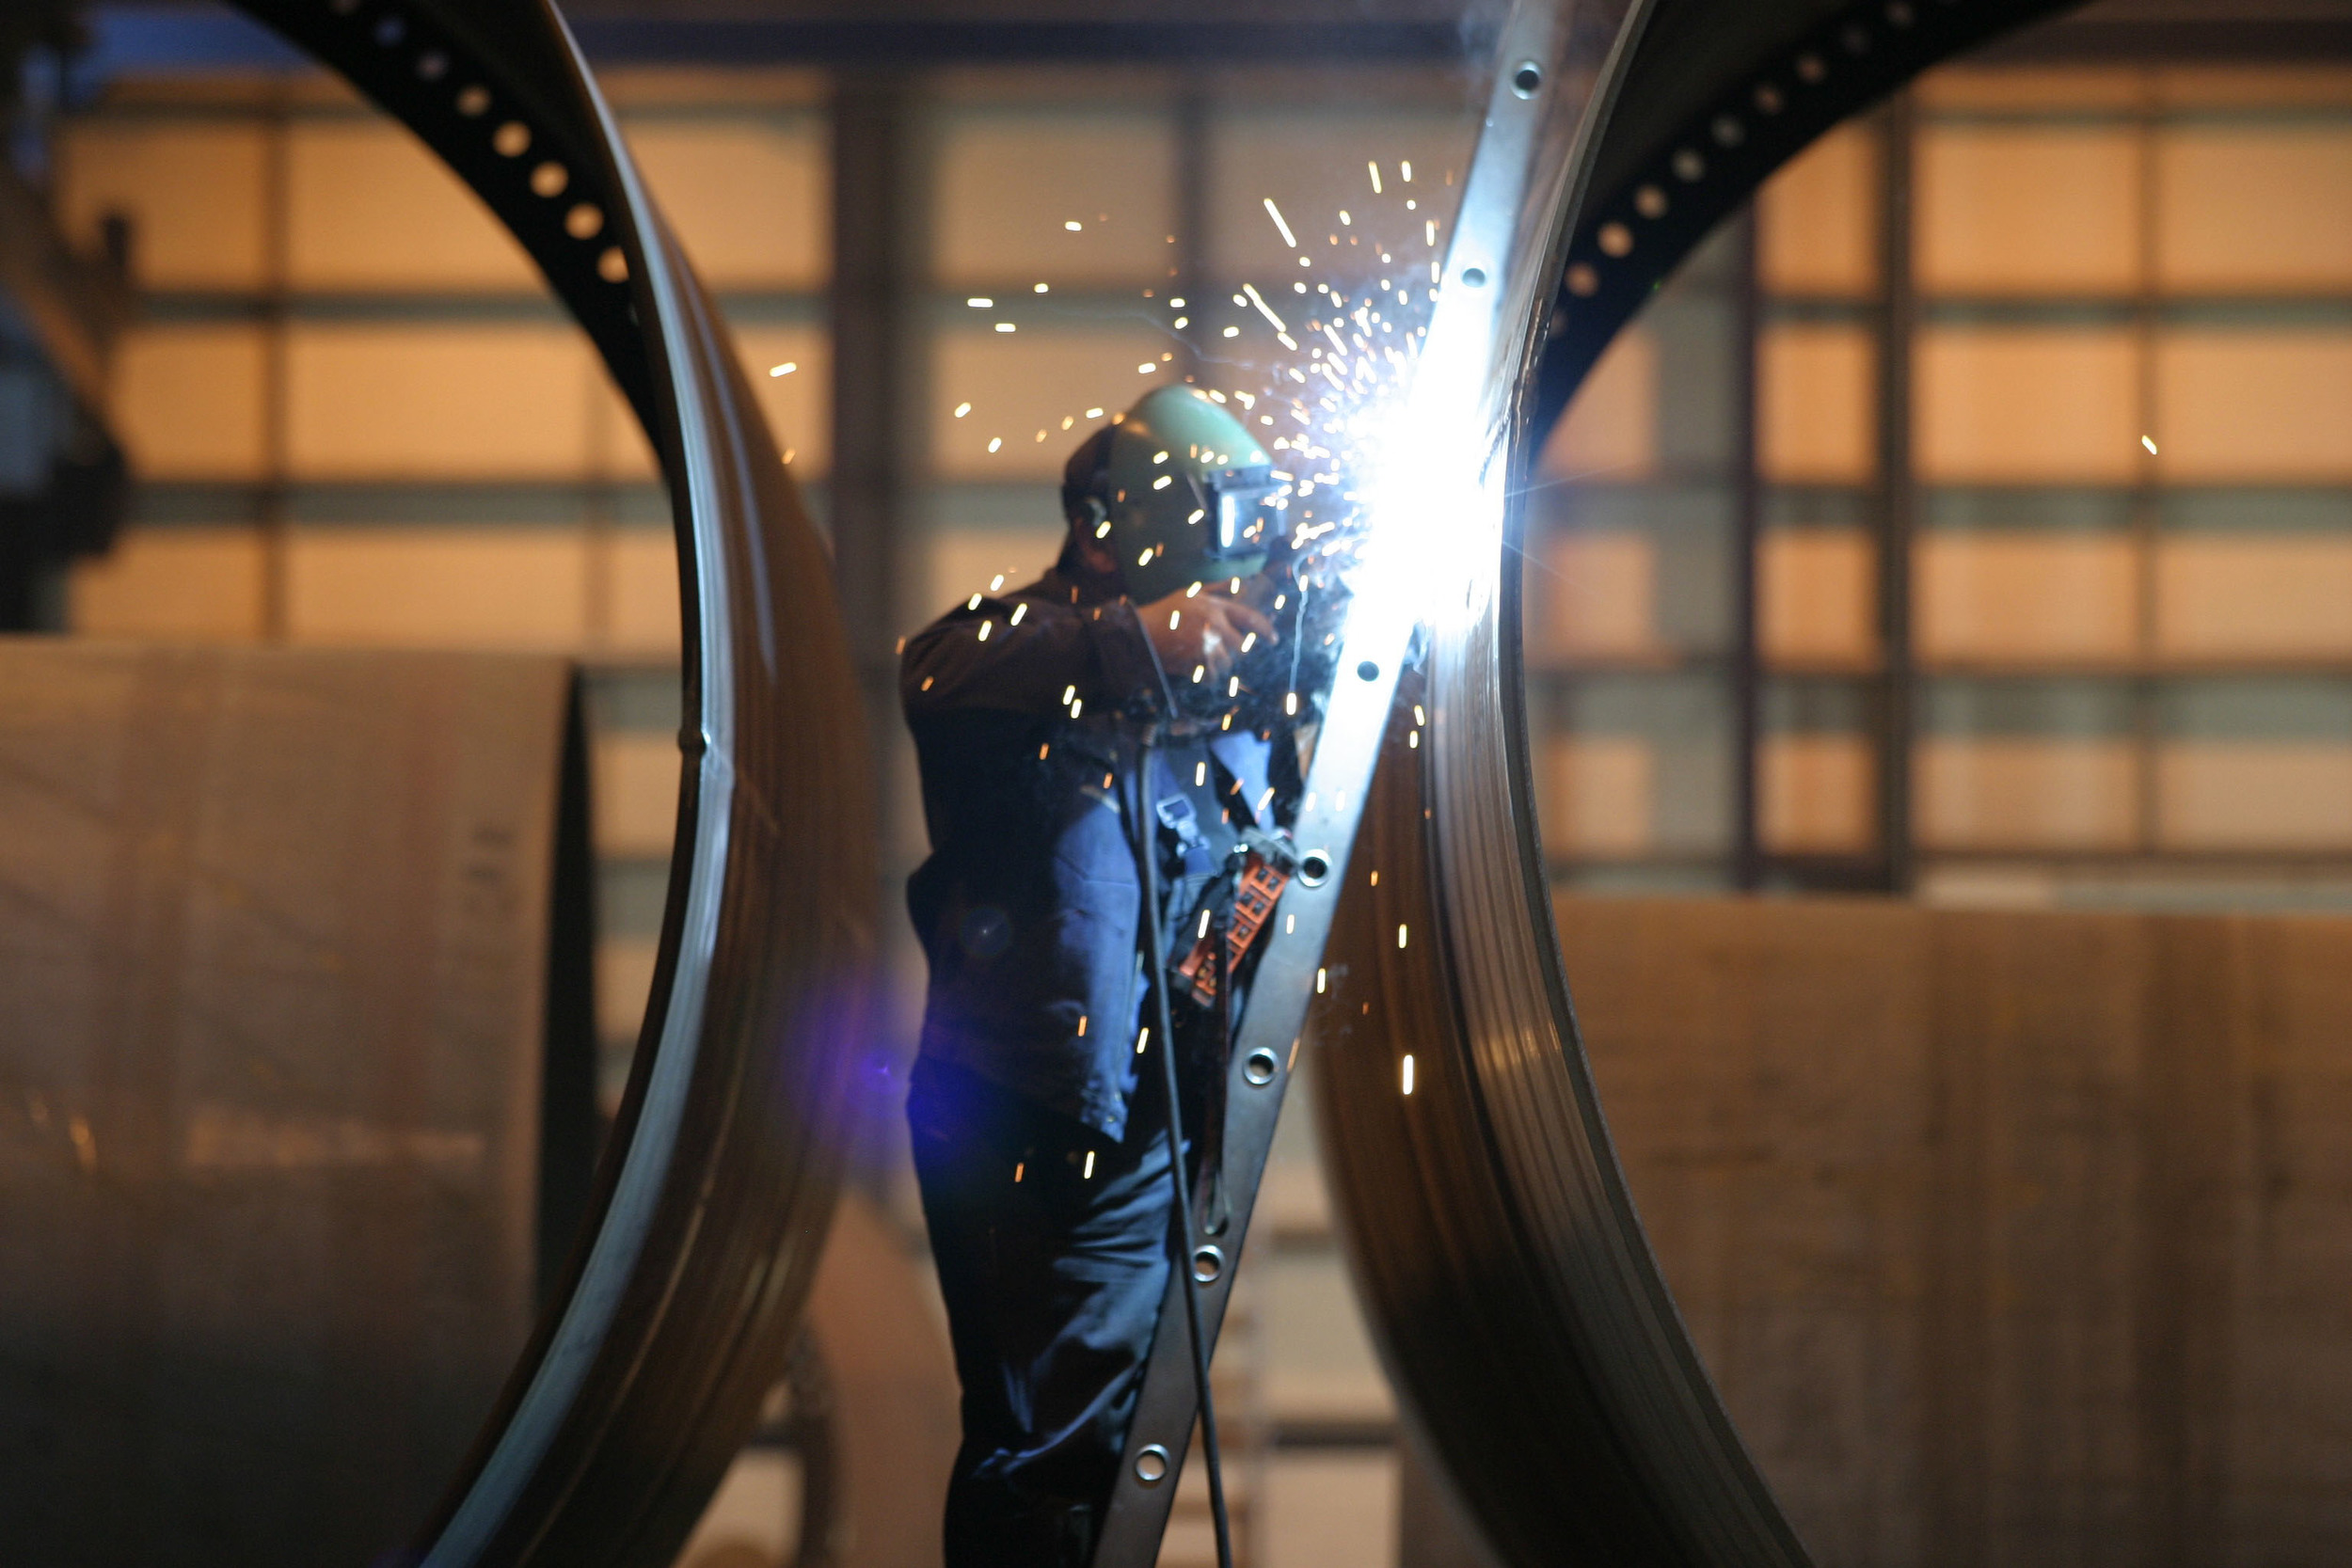 A man on a ladder welding large components of wind turbines with sparks flying